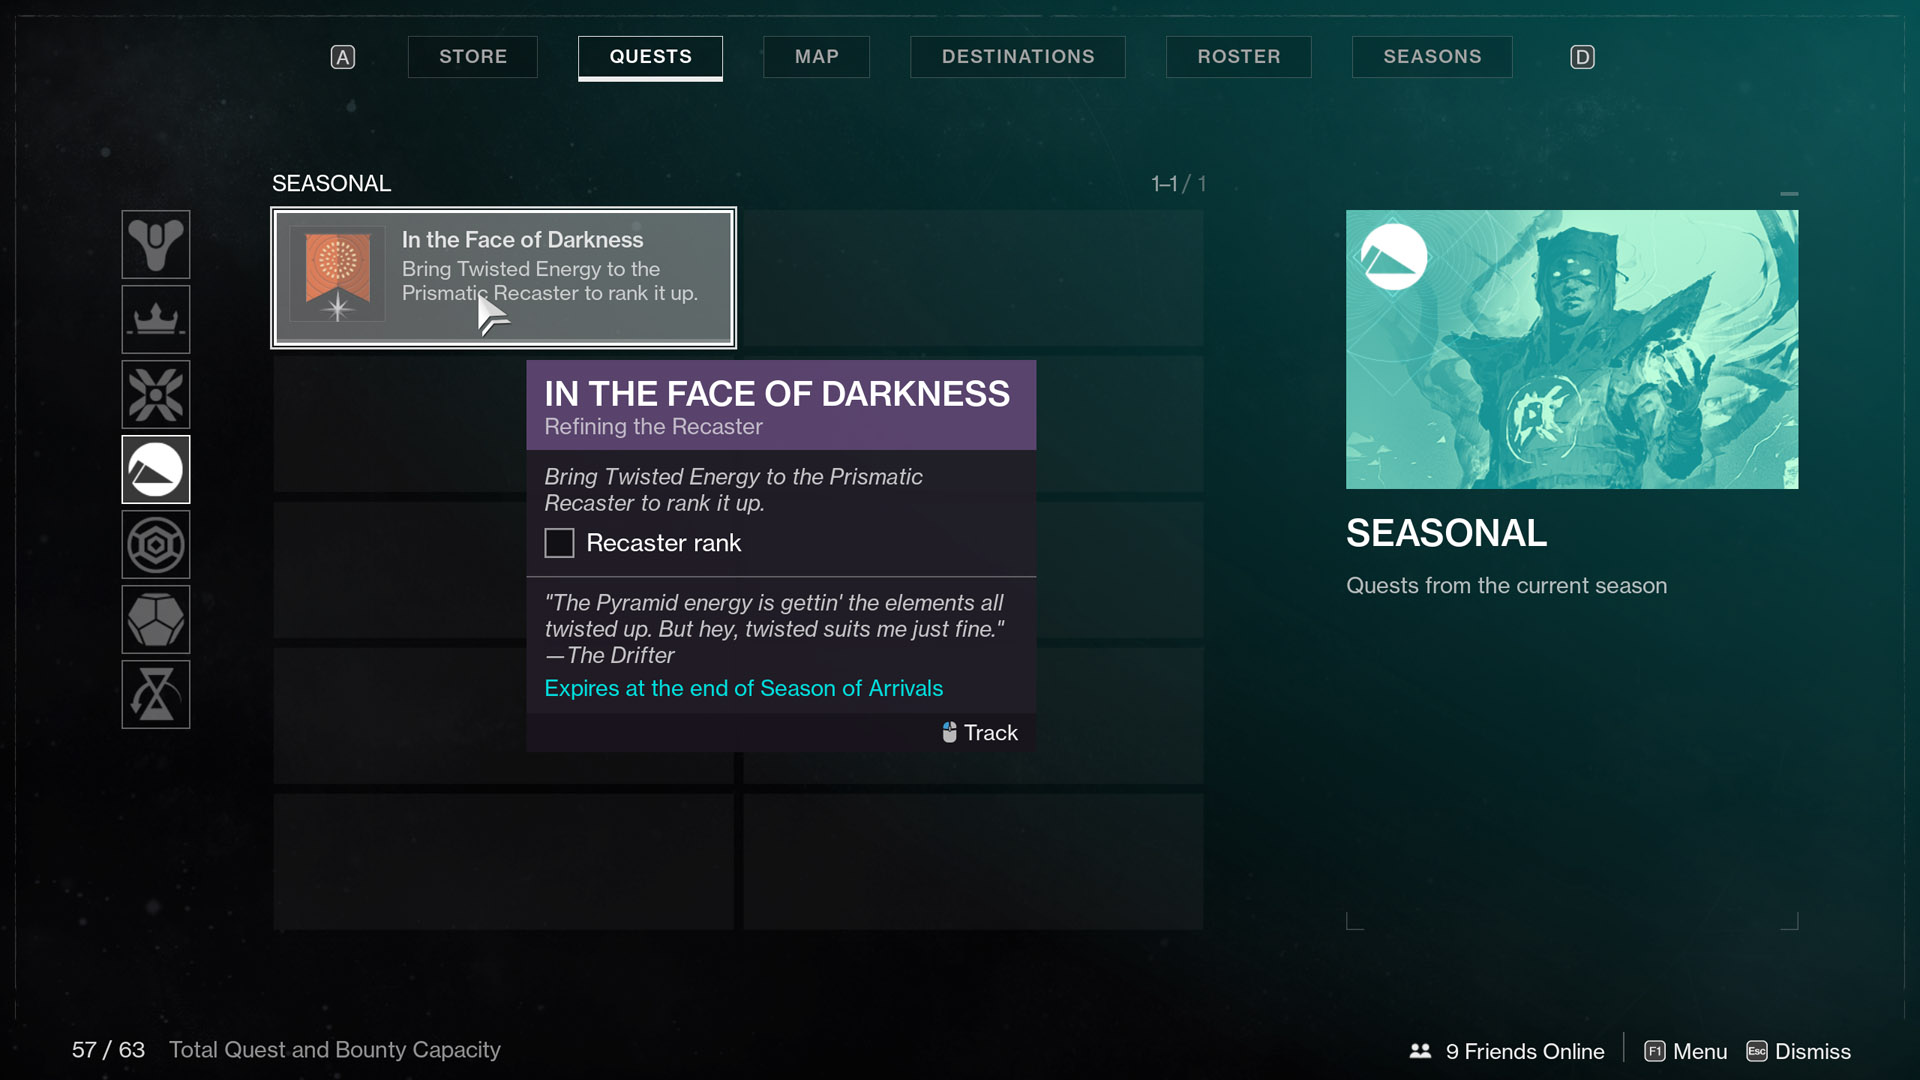 destiny 2 season of arrivals in the face of darkness Refining the Recaster